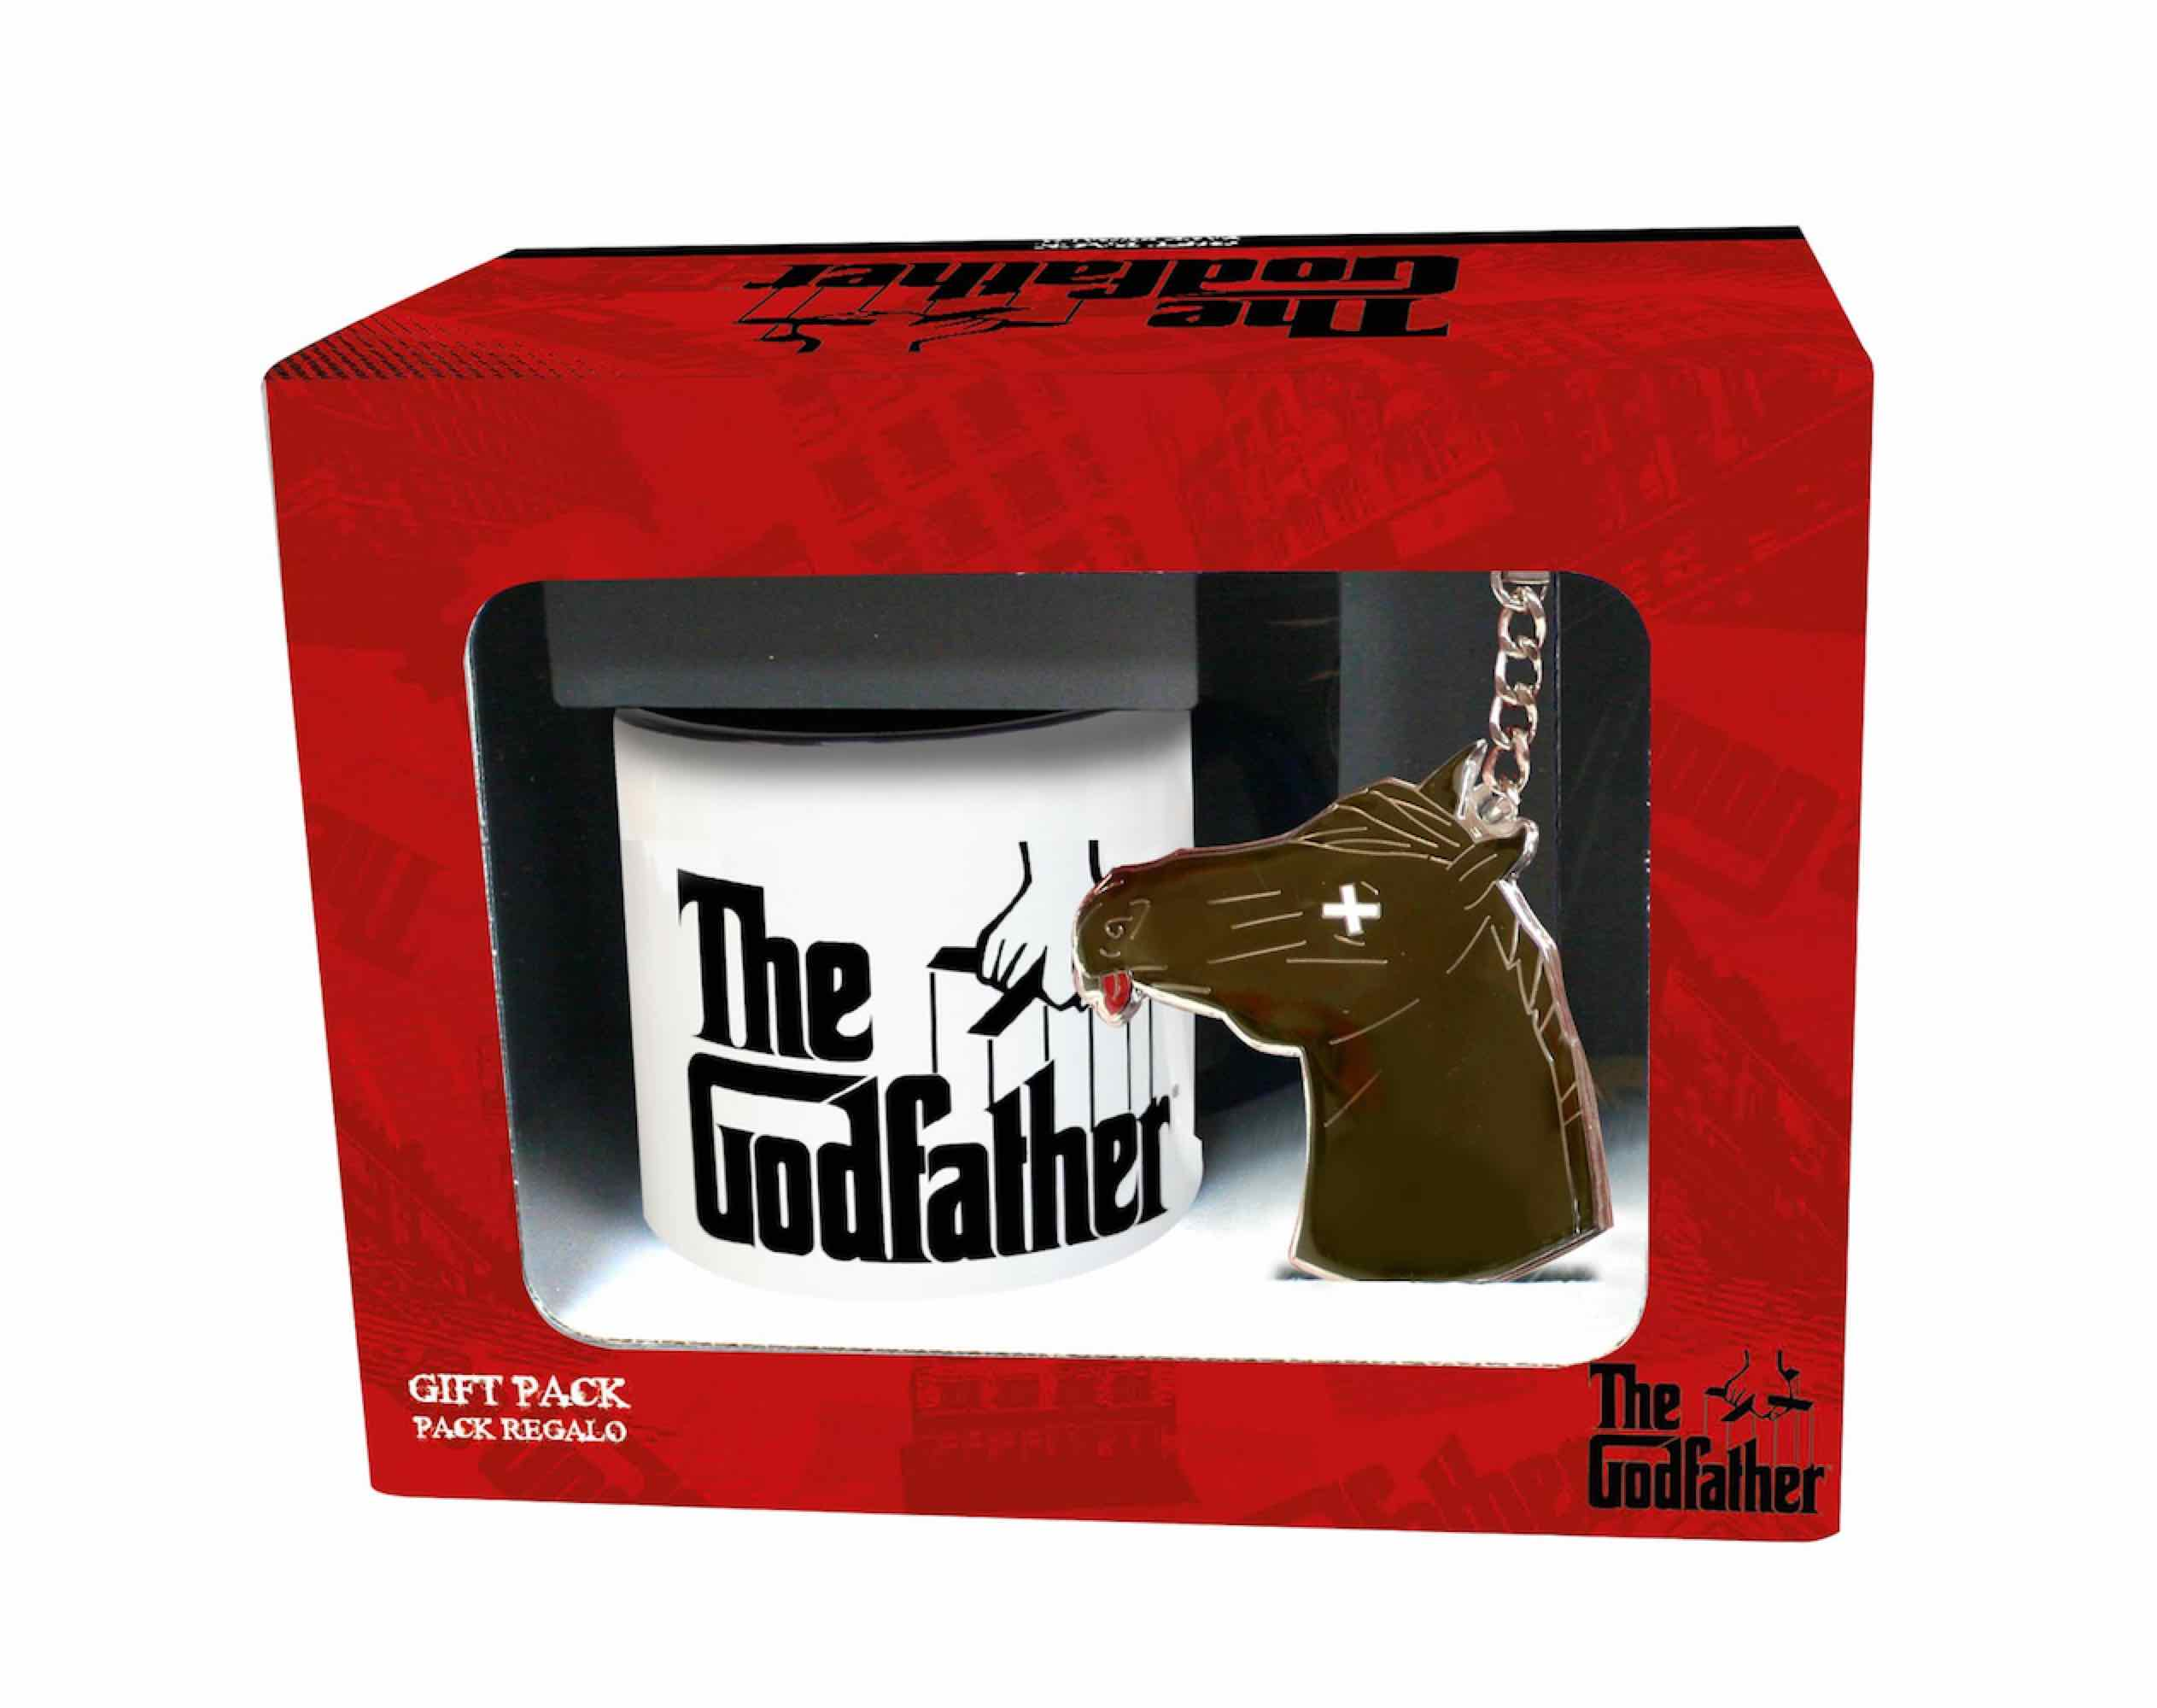 SET REGALO MODELO A THE GODFATHER